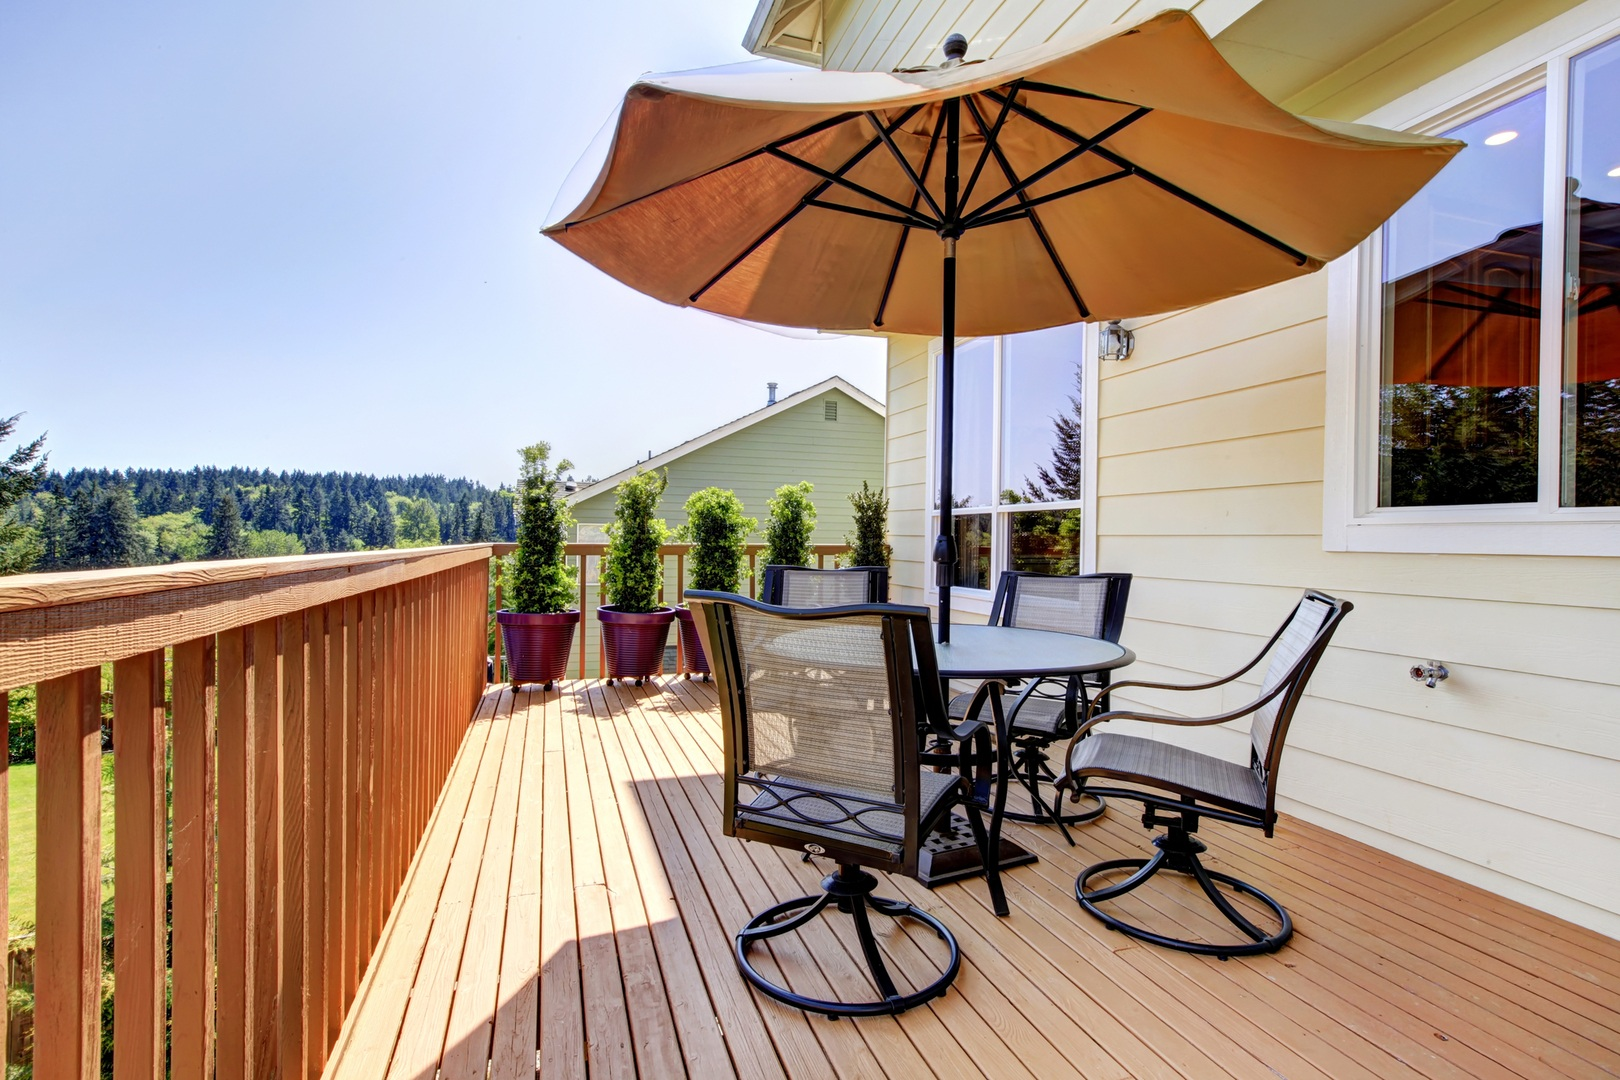 Deck with table, chairs and umbrella.